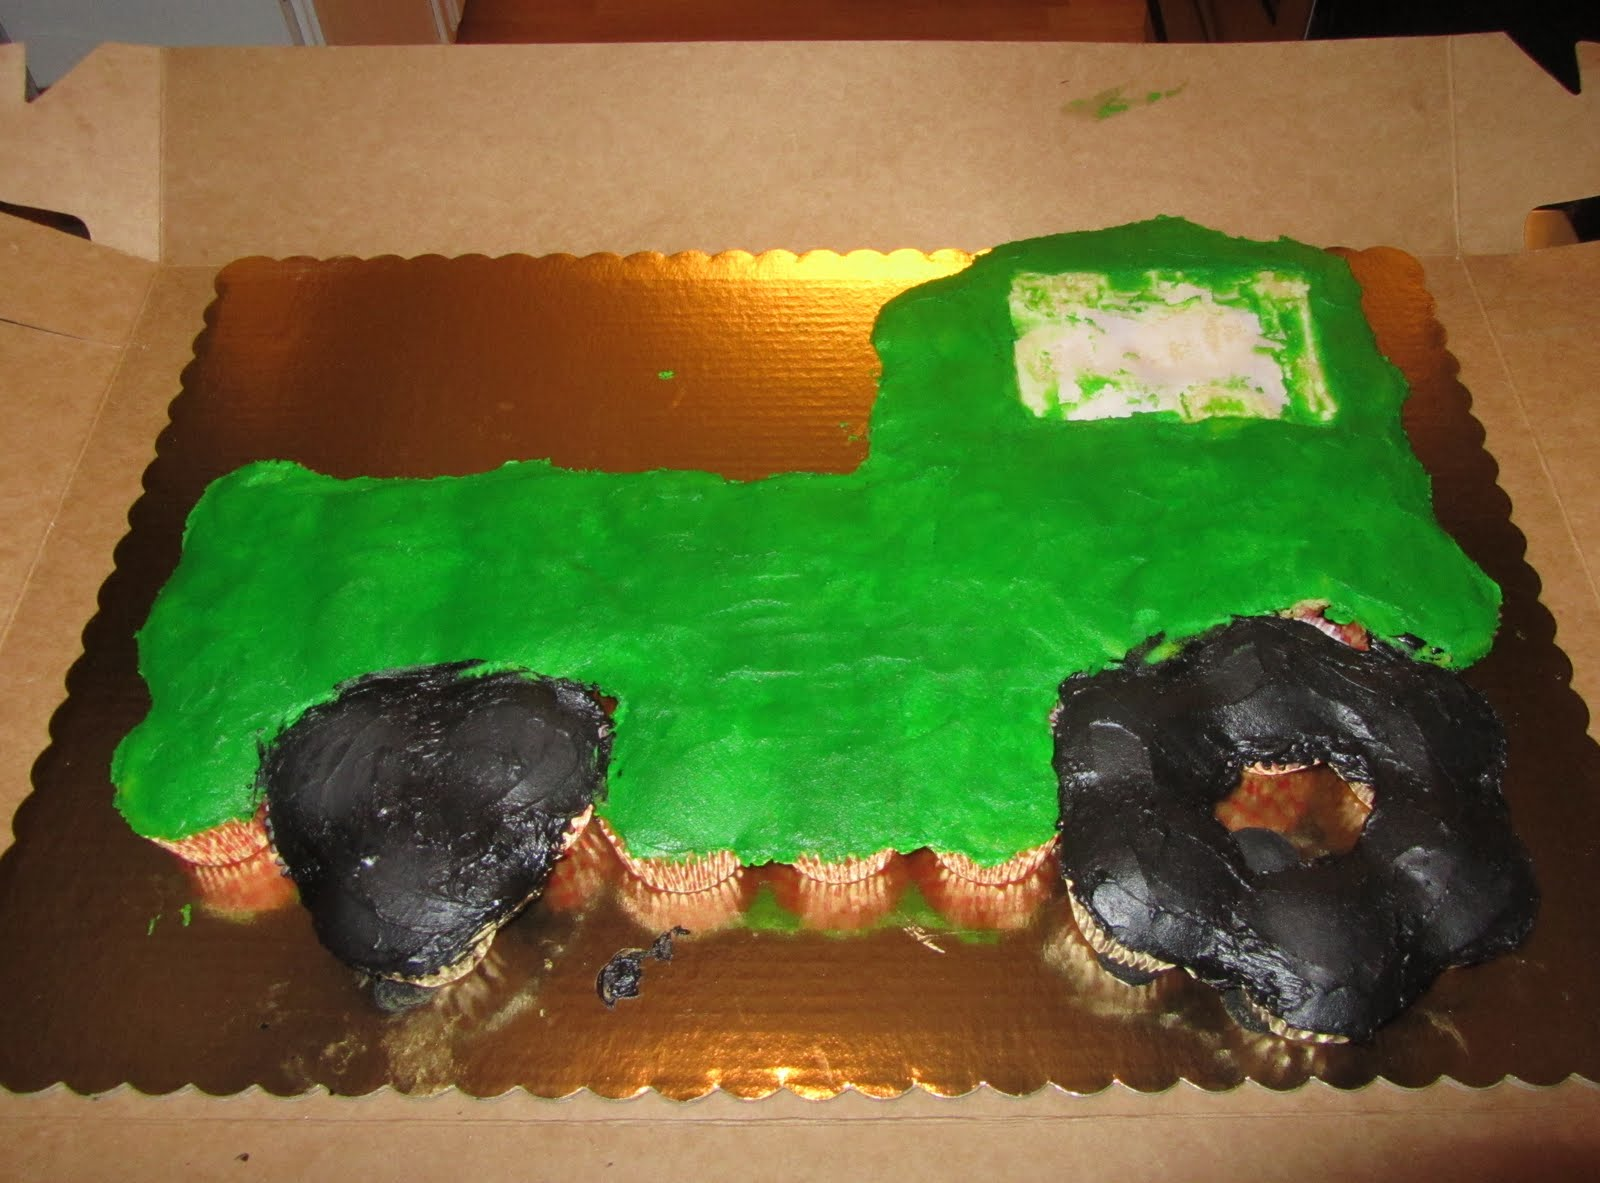 Mellys Mouthful Old McMellys Farm Tractor Cake